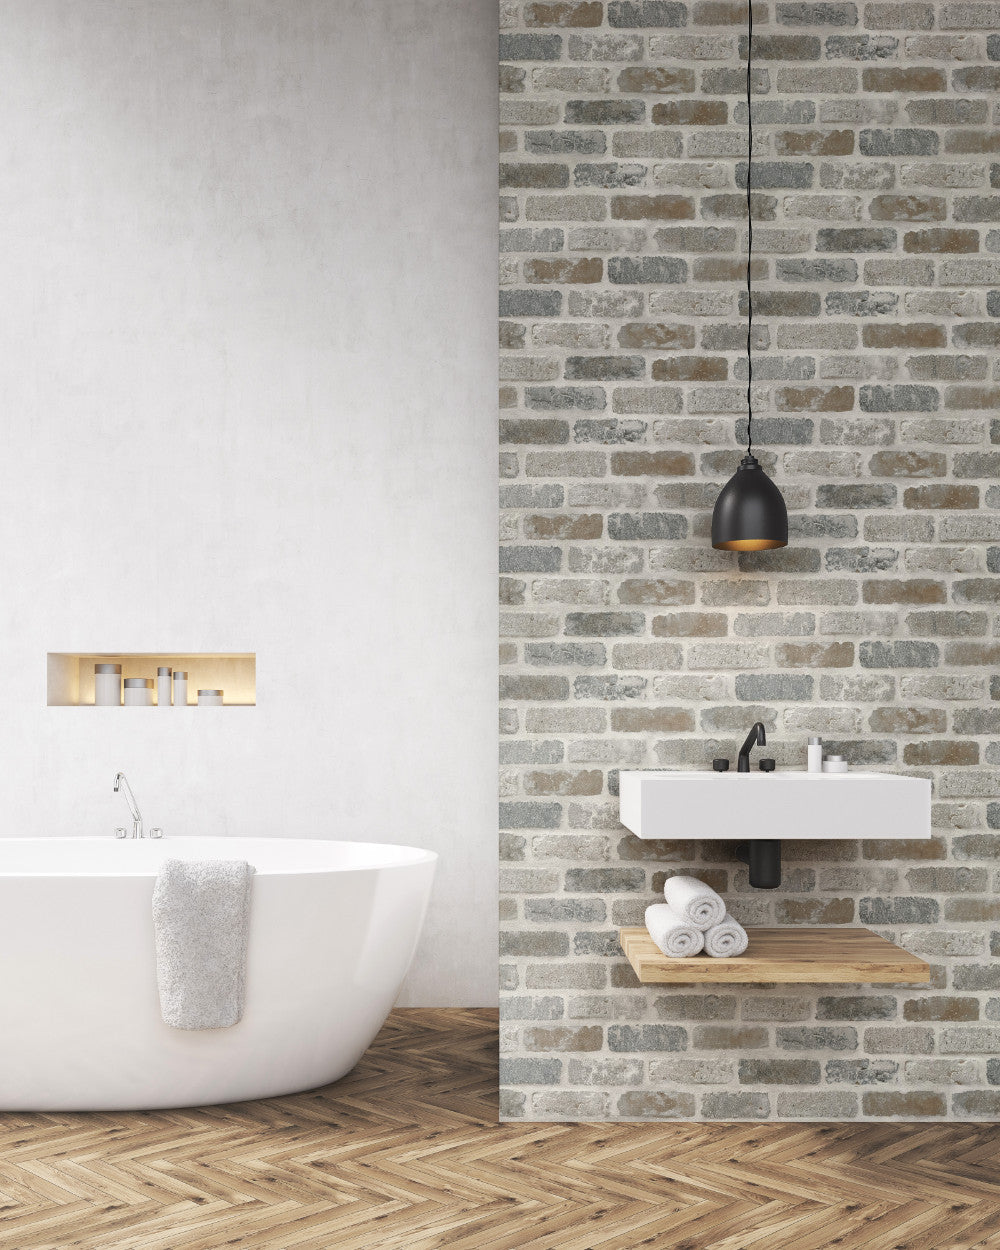 - Washed Faux Brick Peel-and-Stick Wallpaper In Neutrals By NextWall